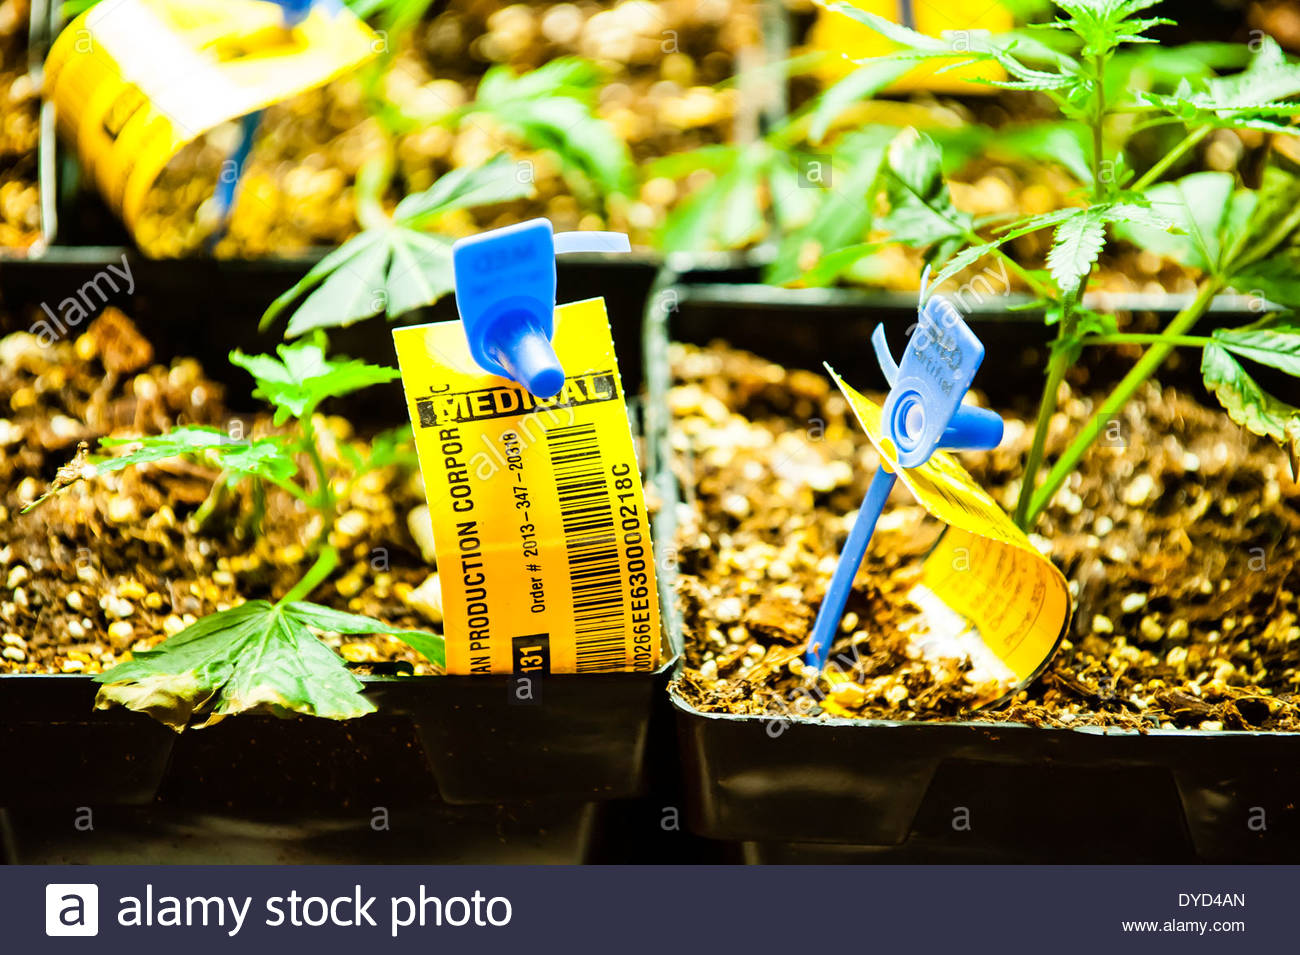 Radio frequency ID tags on pot plants, Medicine Man Denver pot dispensary, Denver, Colorado USA. - Stock Image